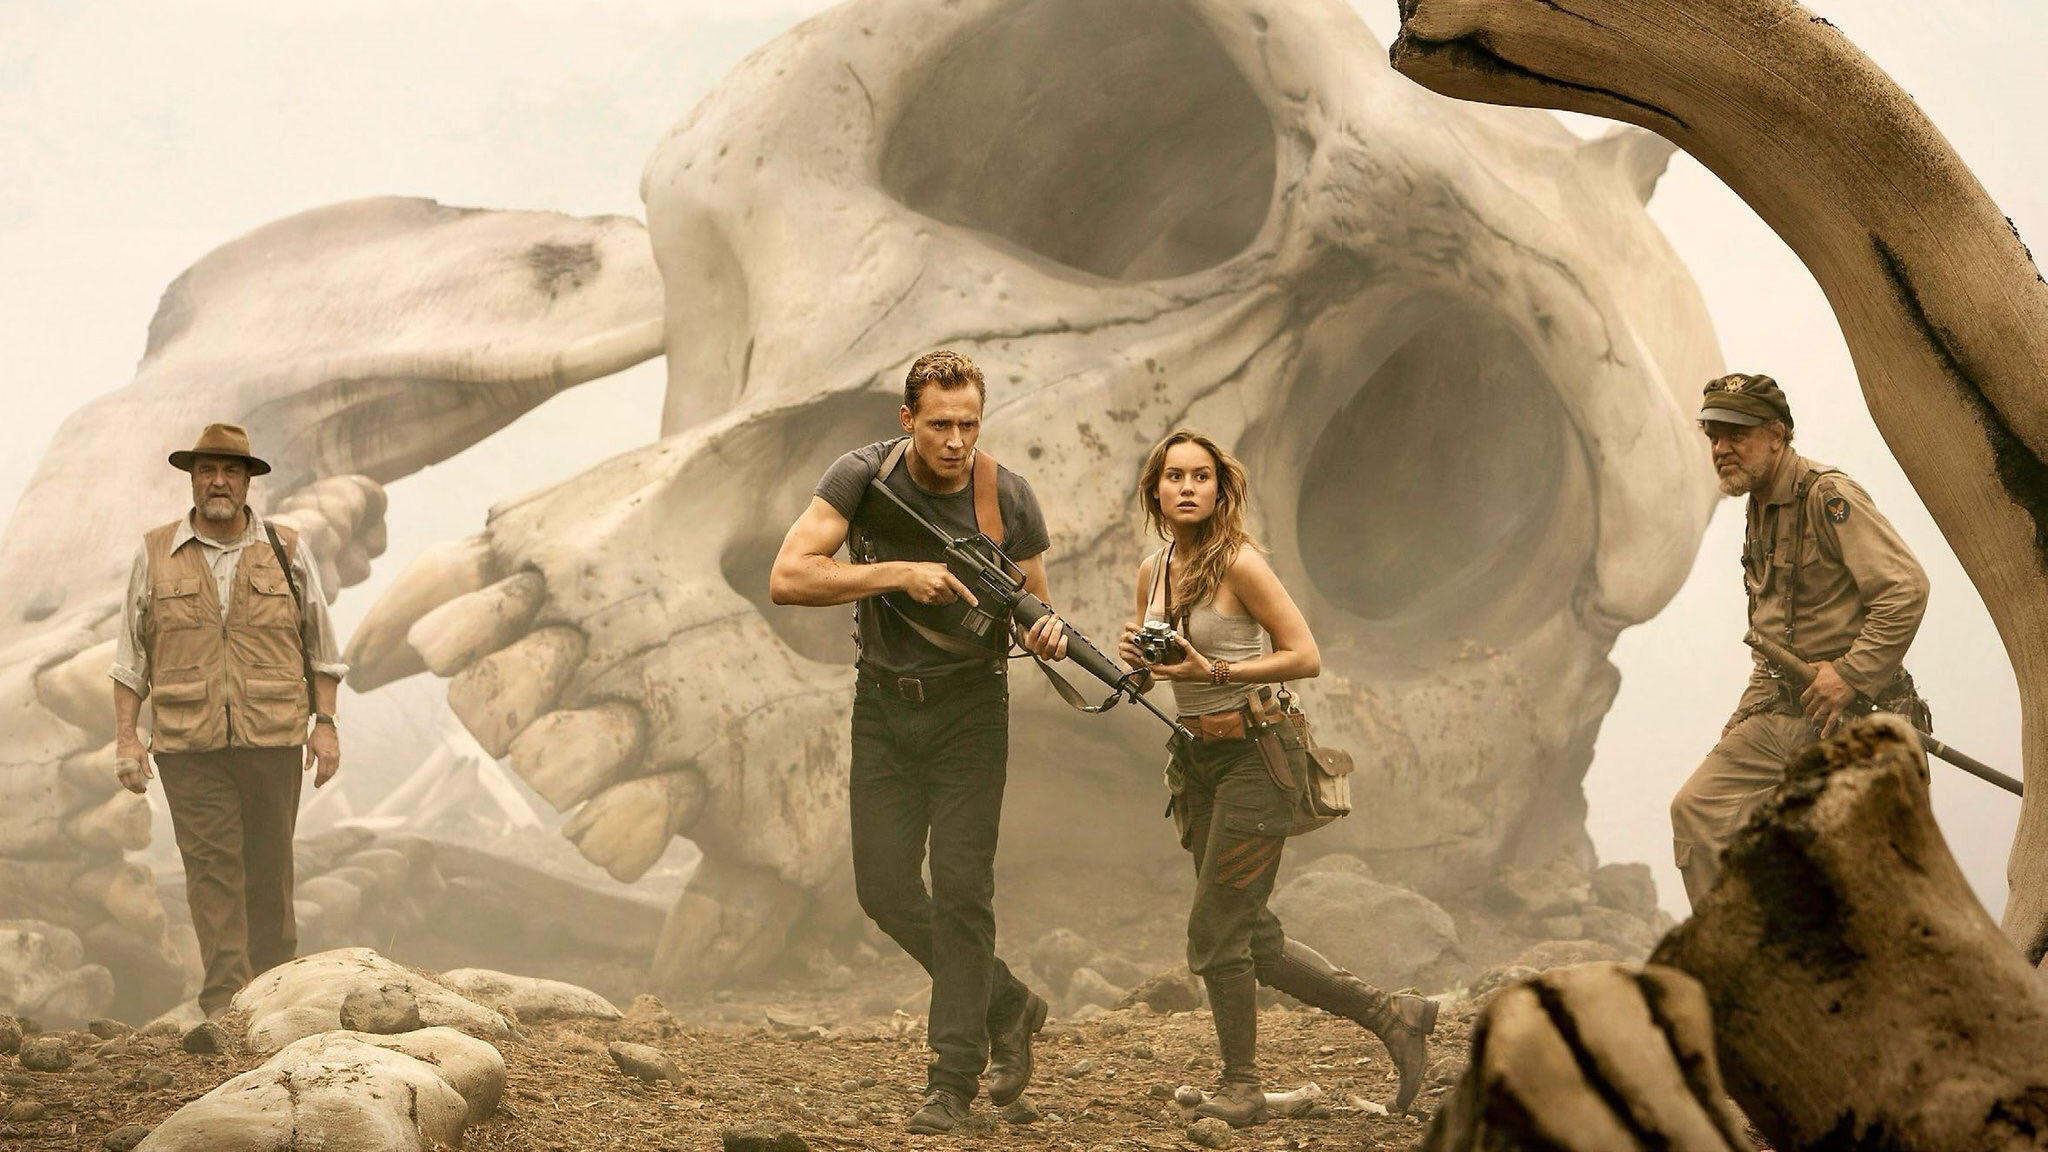 John Goodman, Tom Hiddleston, Brie Larson et John C. Reilly dans Kong : Skull Island (2017)